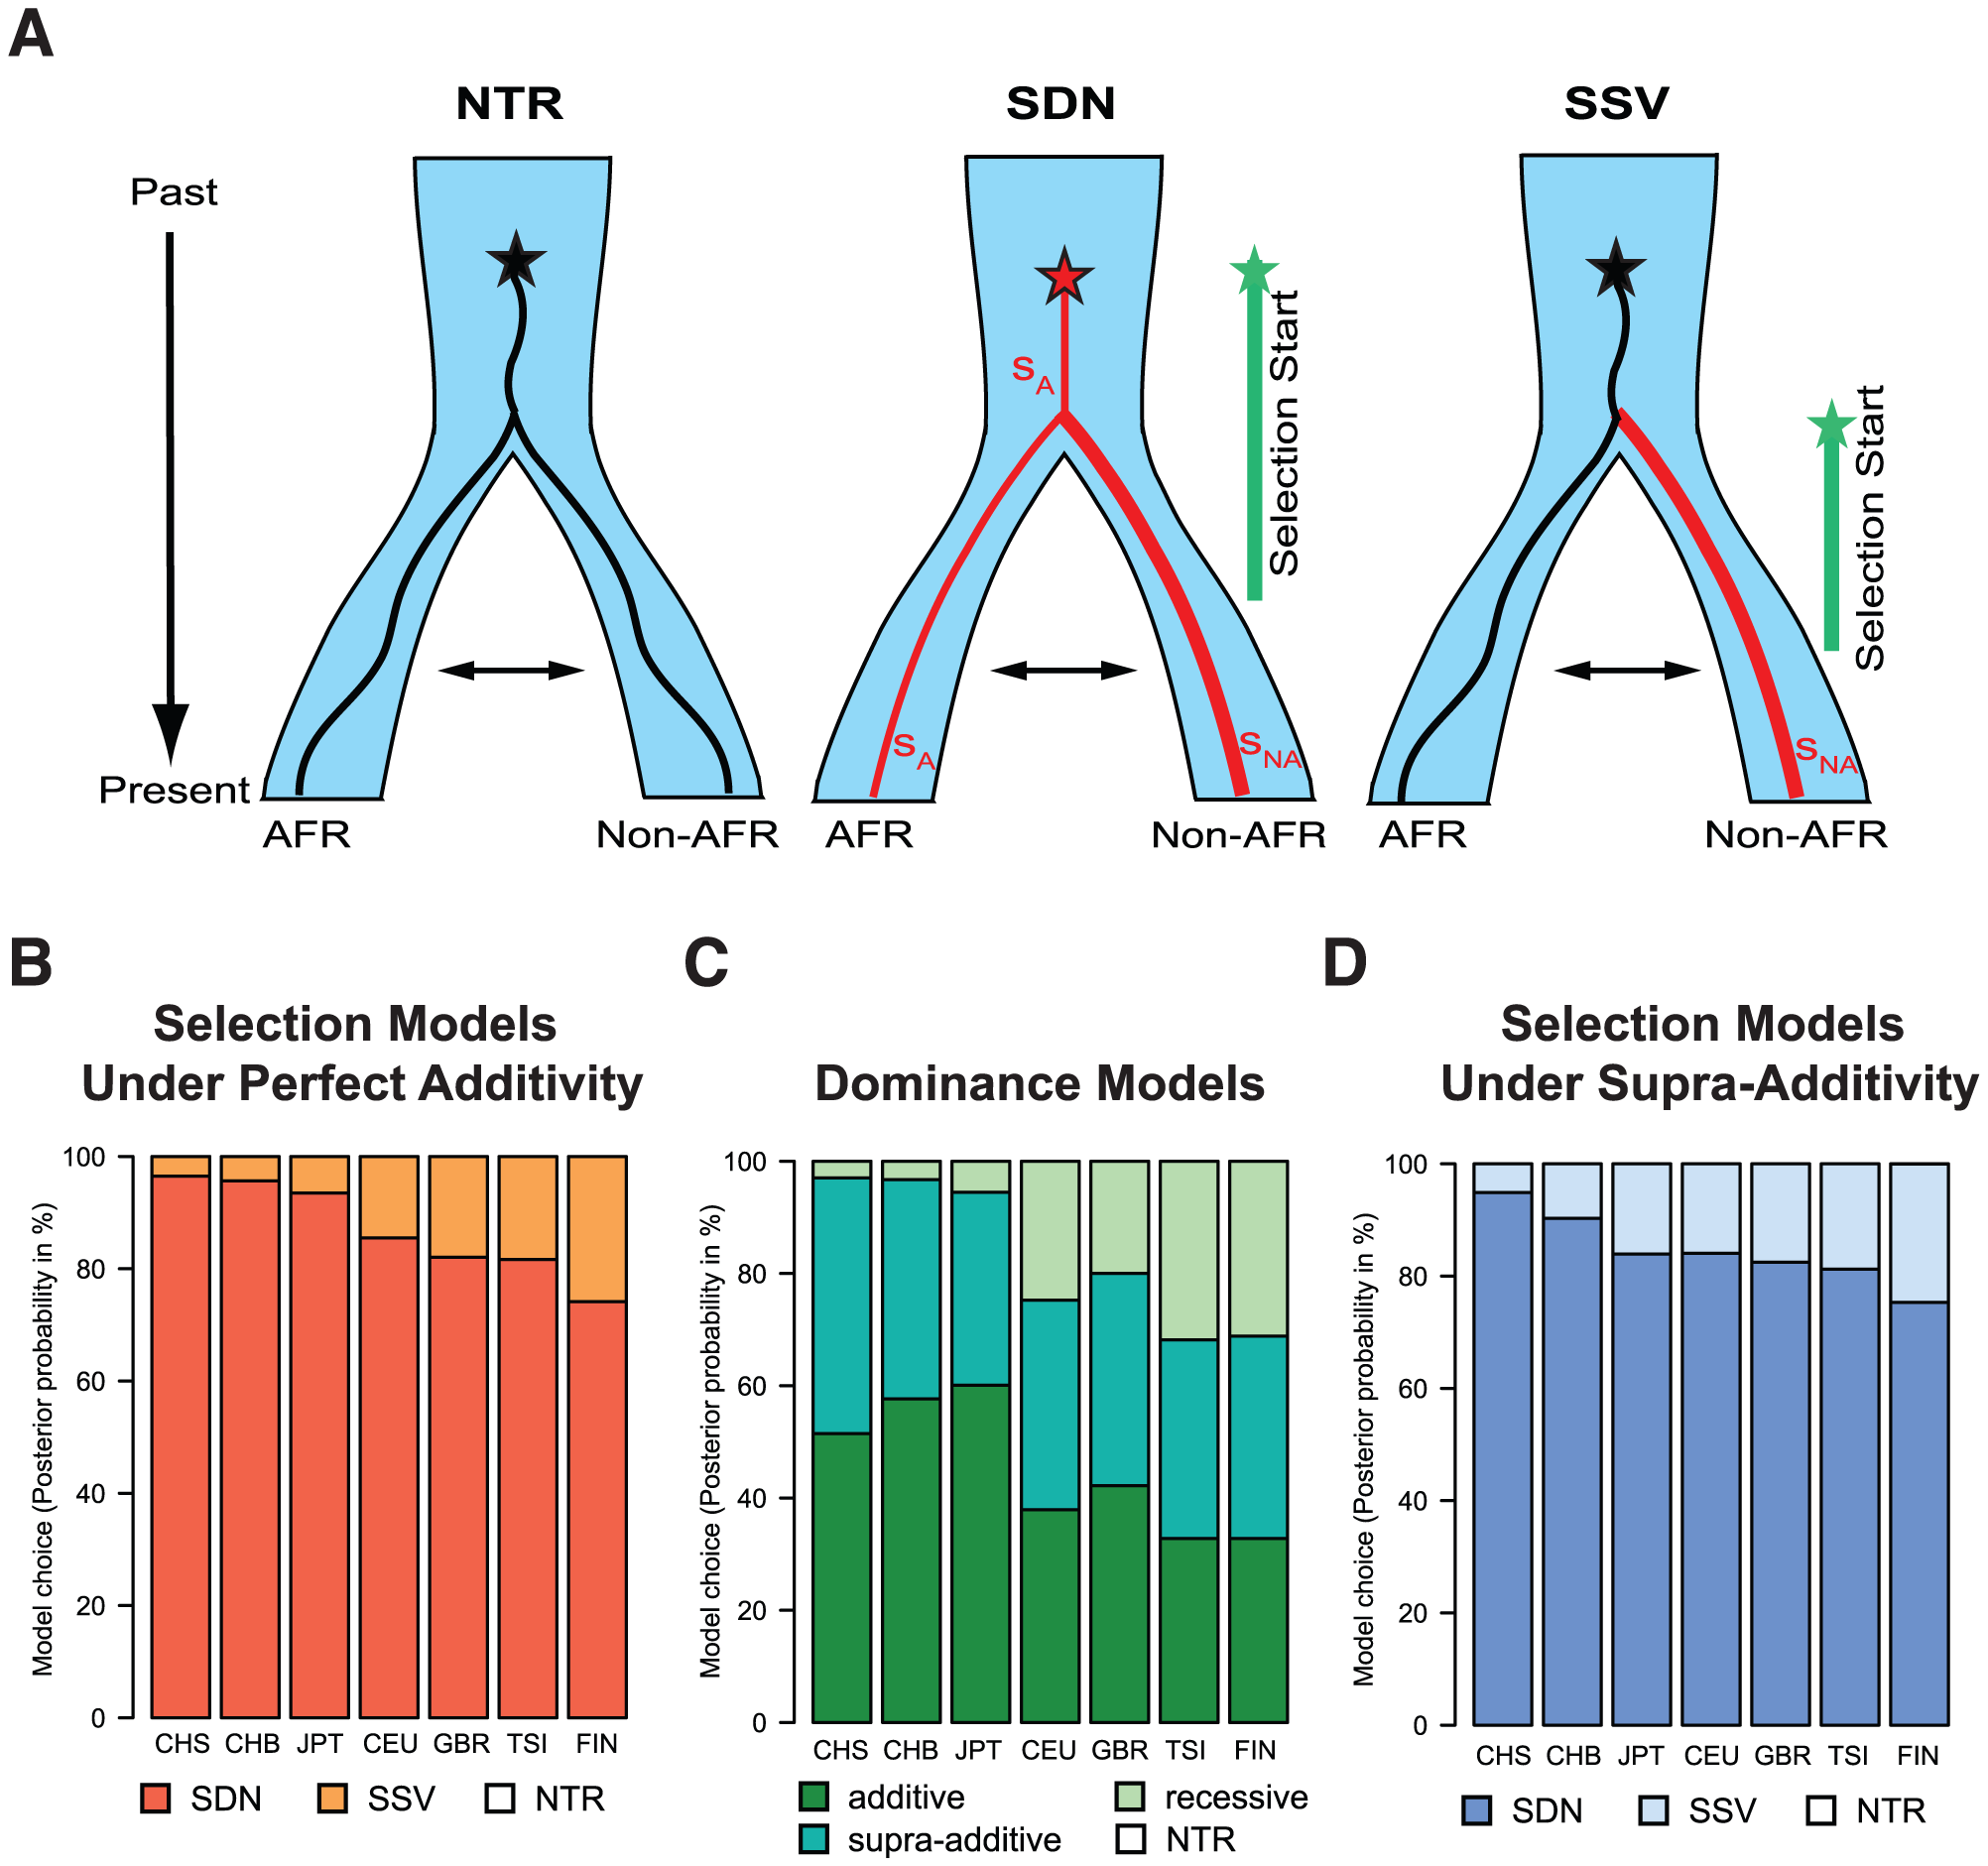 (A) Graphical representation of the different models of selection tested in the ABC analysis (NTR - neutral, SDN - selection on a de novo mutation, and SSV - selection on standing variation).